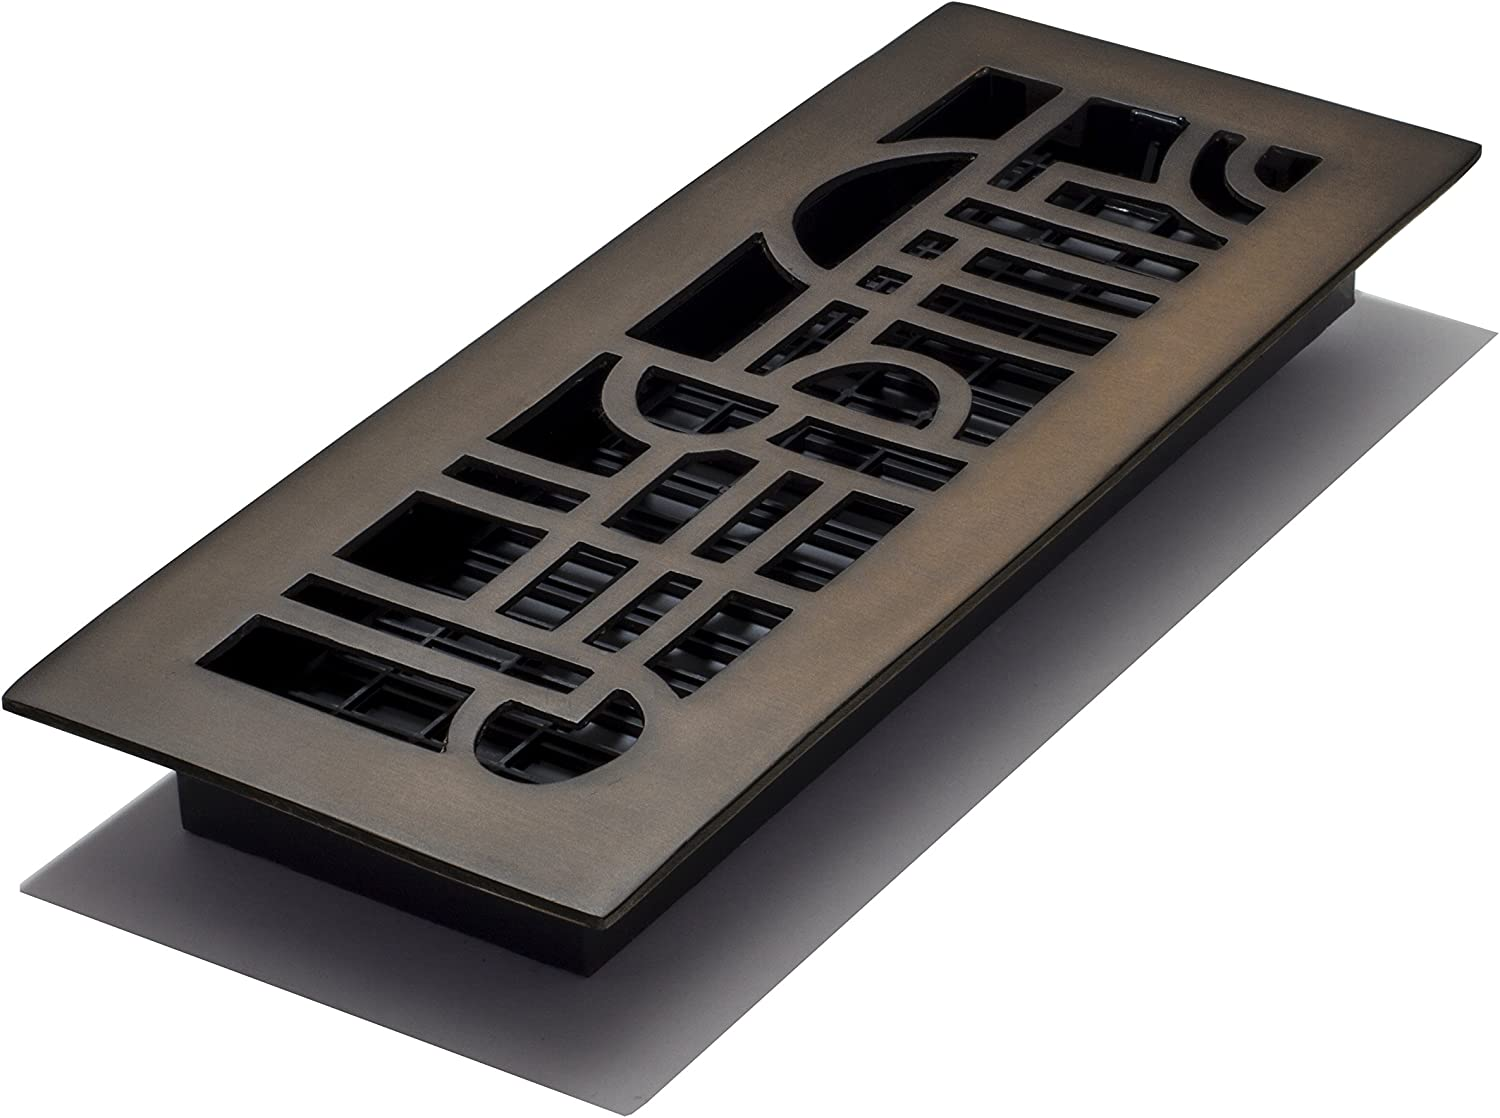 Decor Grates Popular Max 83% OFF shop is the lowest price challenge AD412-RB 4-Inch by Art Floor 12-Inch Register Deco